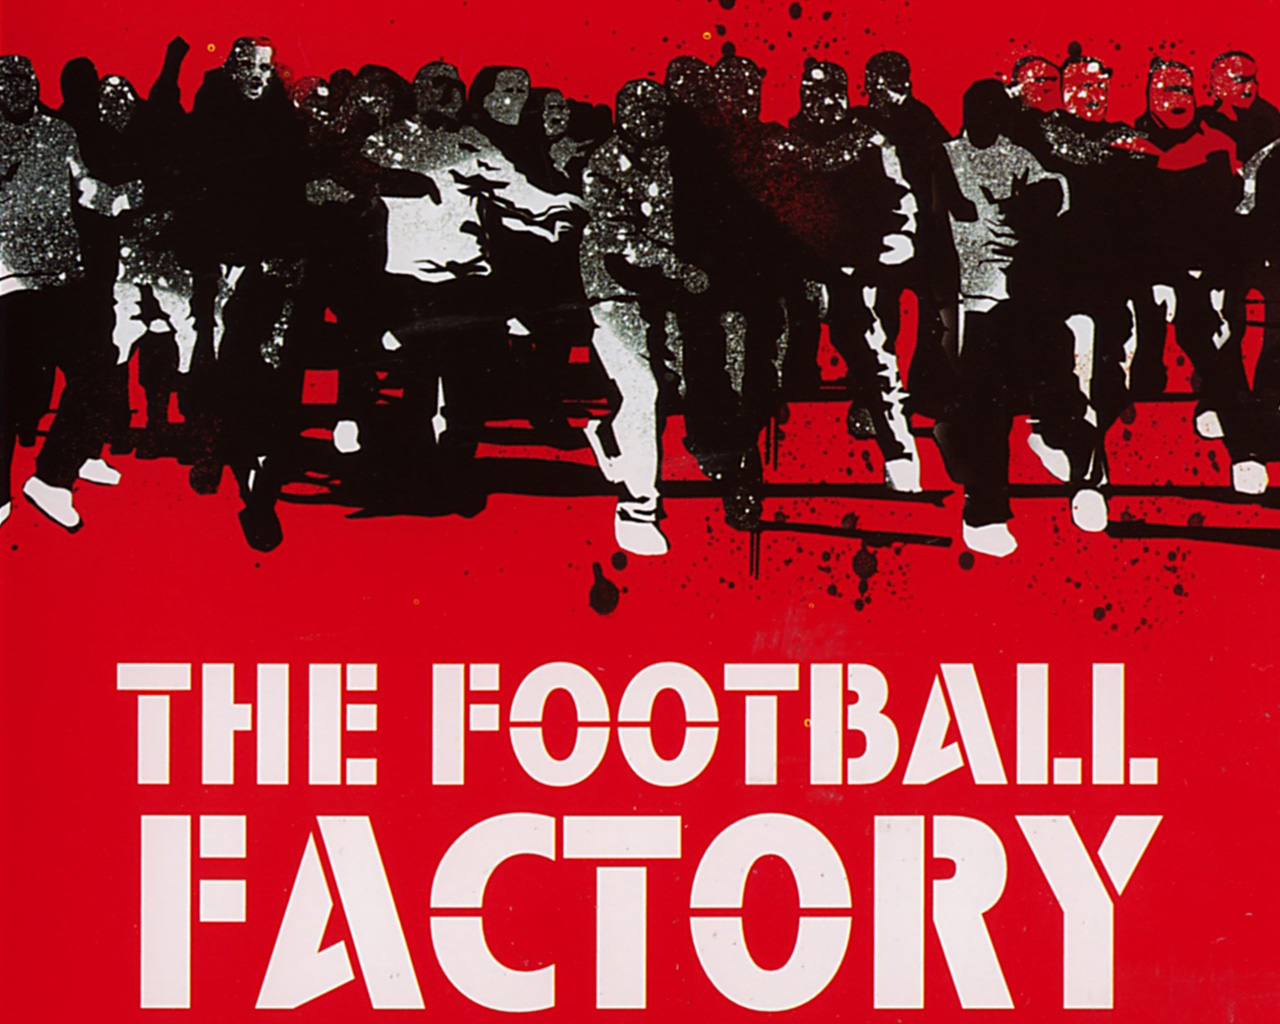 Wallpaper Football Factory - A1 Wallpaperz For You